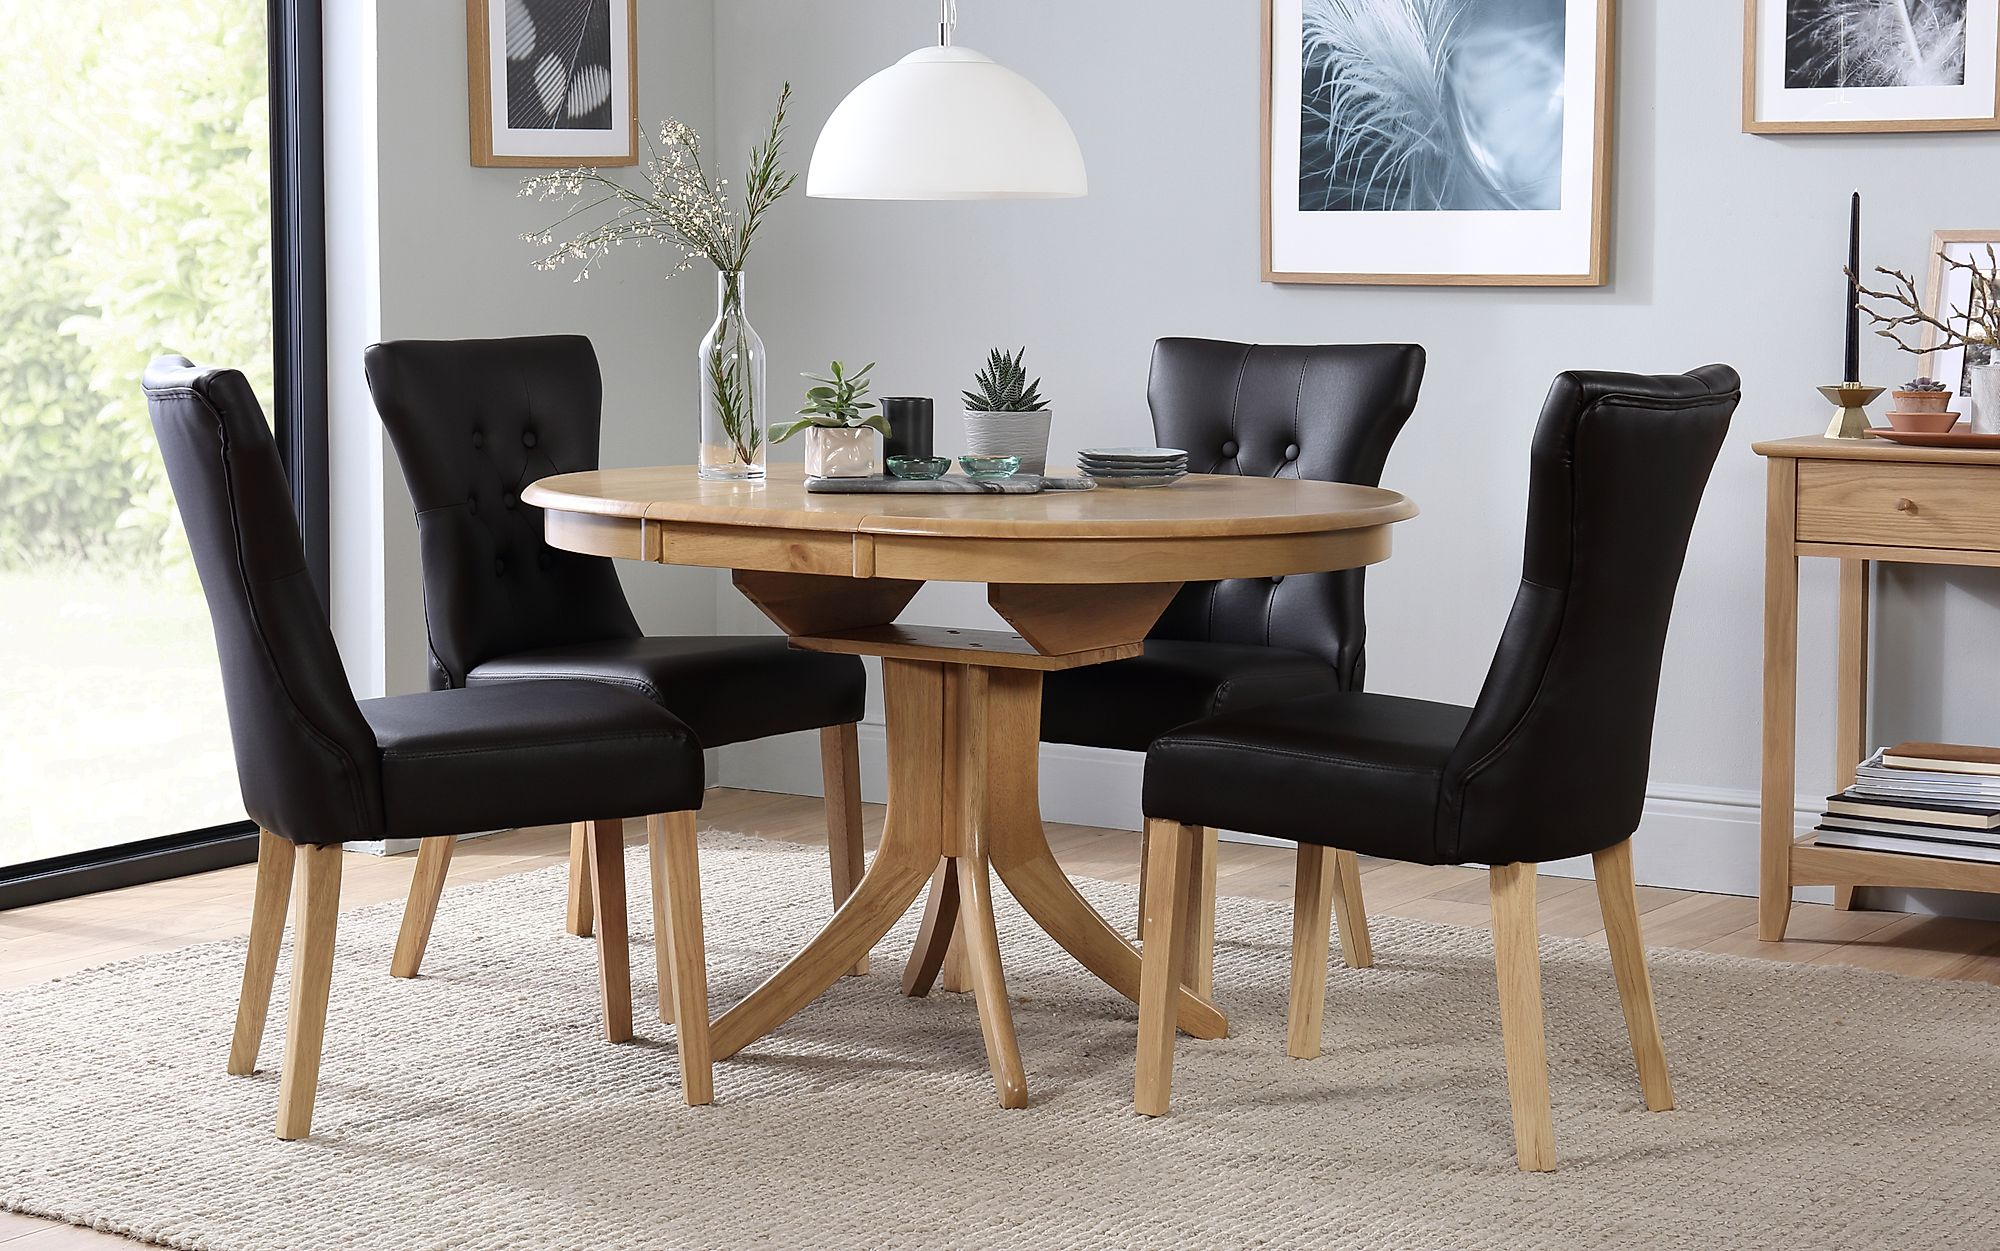 Hudson Round Extending Dining Table With 4 Chairs Set